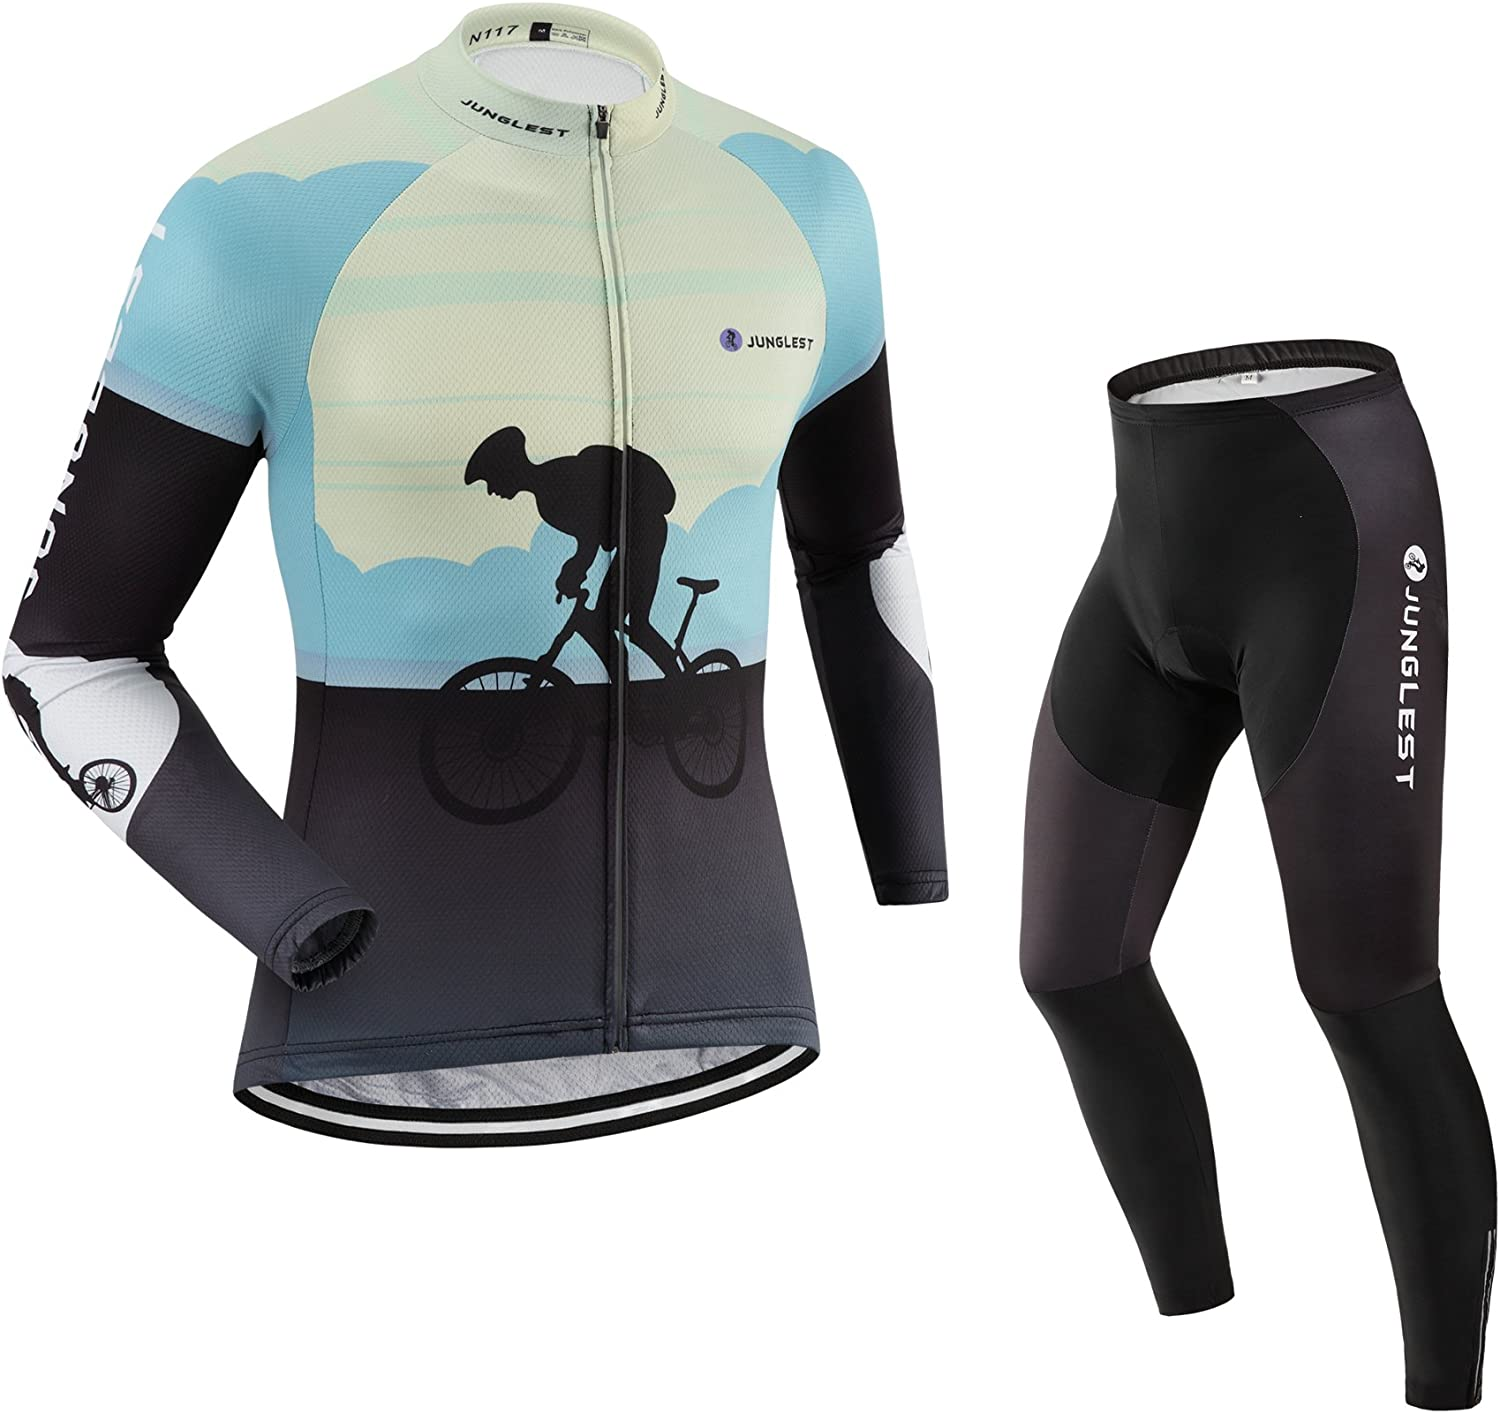 Cycling jersey Set, Maillot de Cyclisme Wen Homme Long sleeve Manches Longues(S5XL,option bib Cuissard,3D pad Coussin) N117